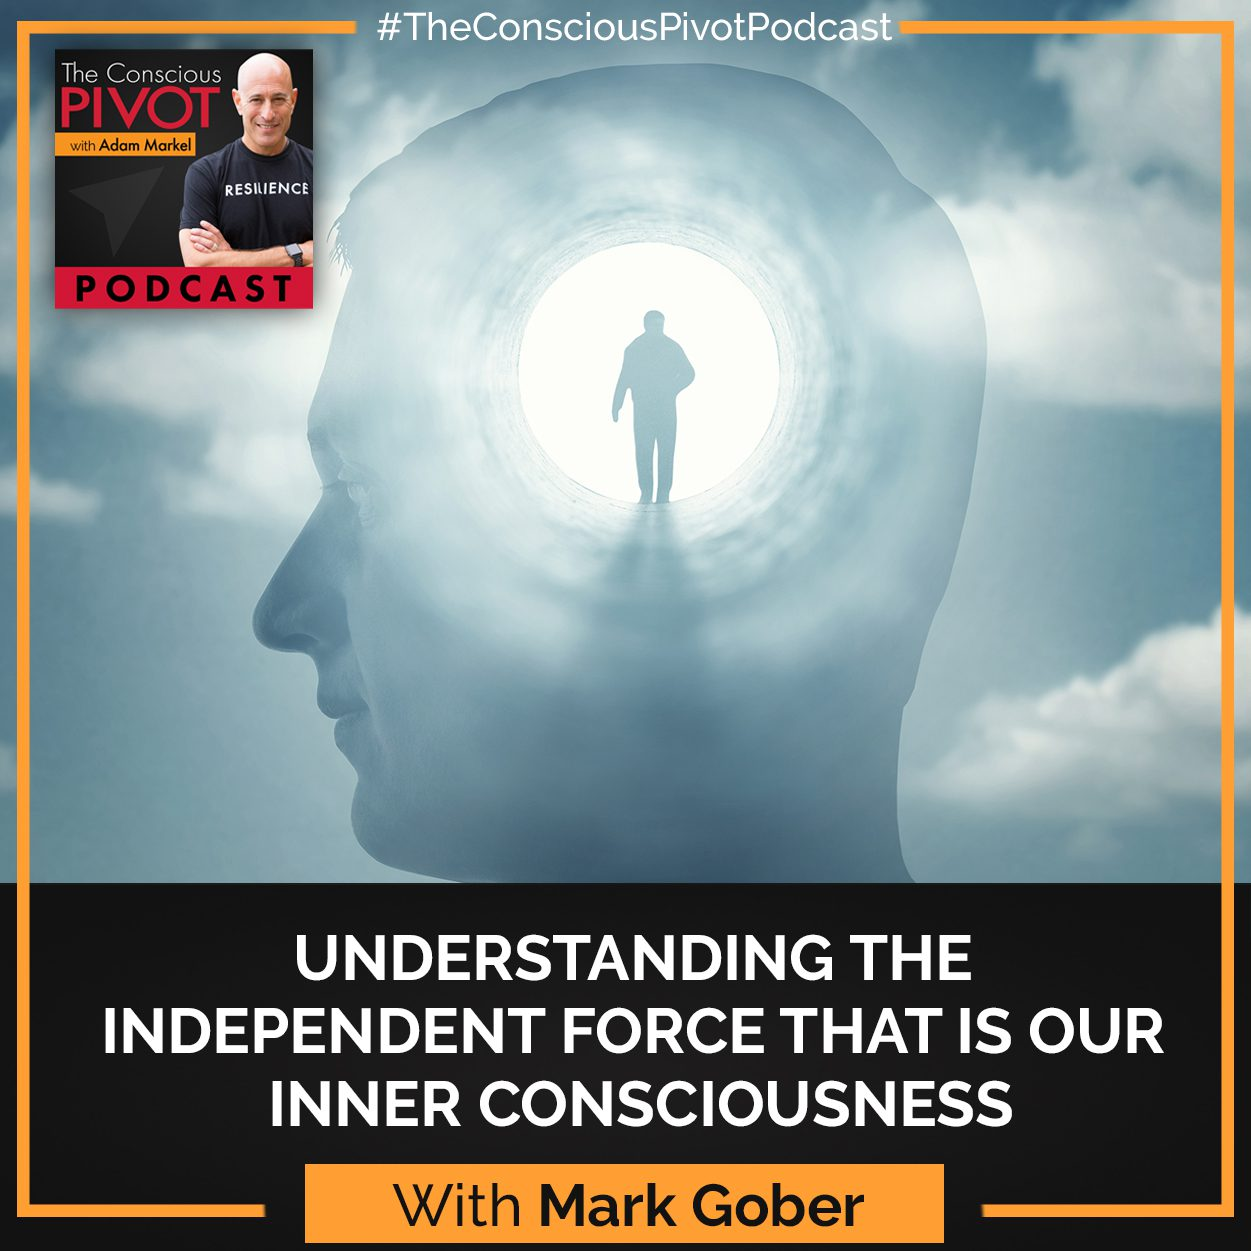 Mark Gober: Understanding The Independent Force That Is Our Inner Consciousness